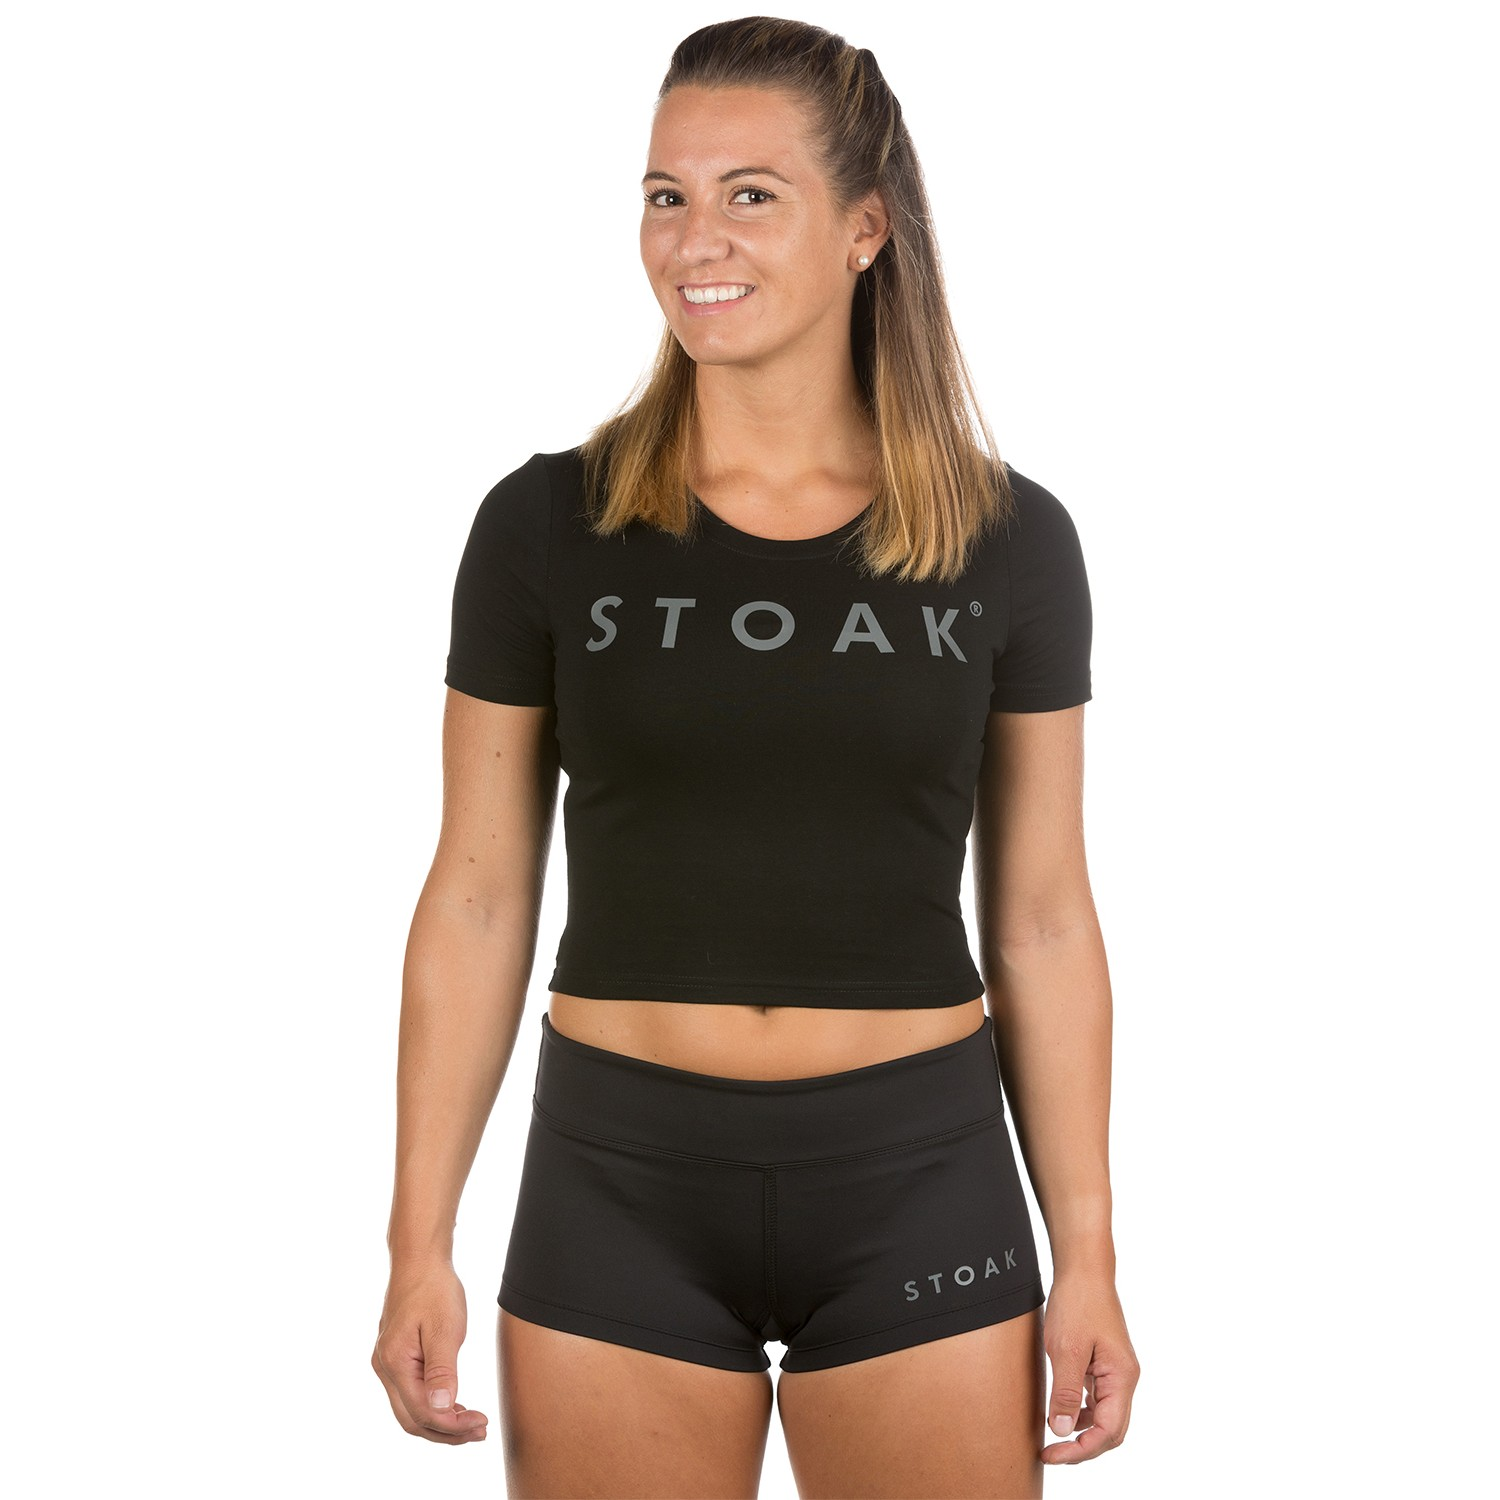 STOAK CARBON Crop Top